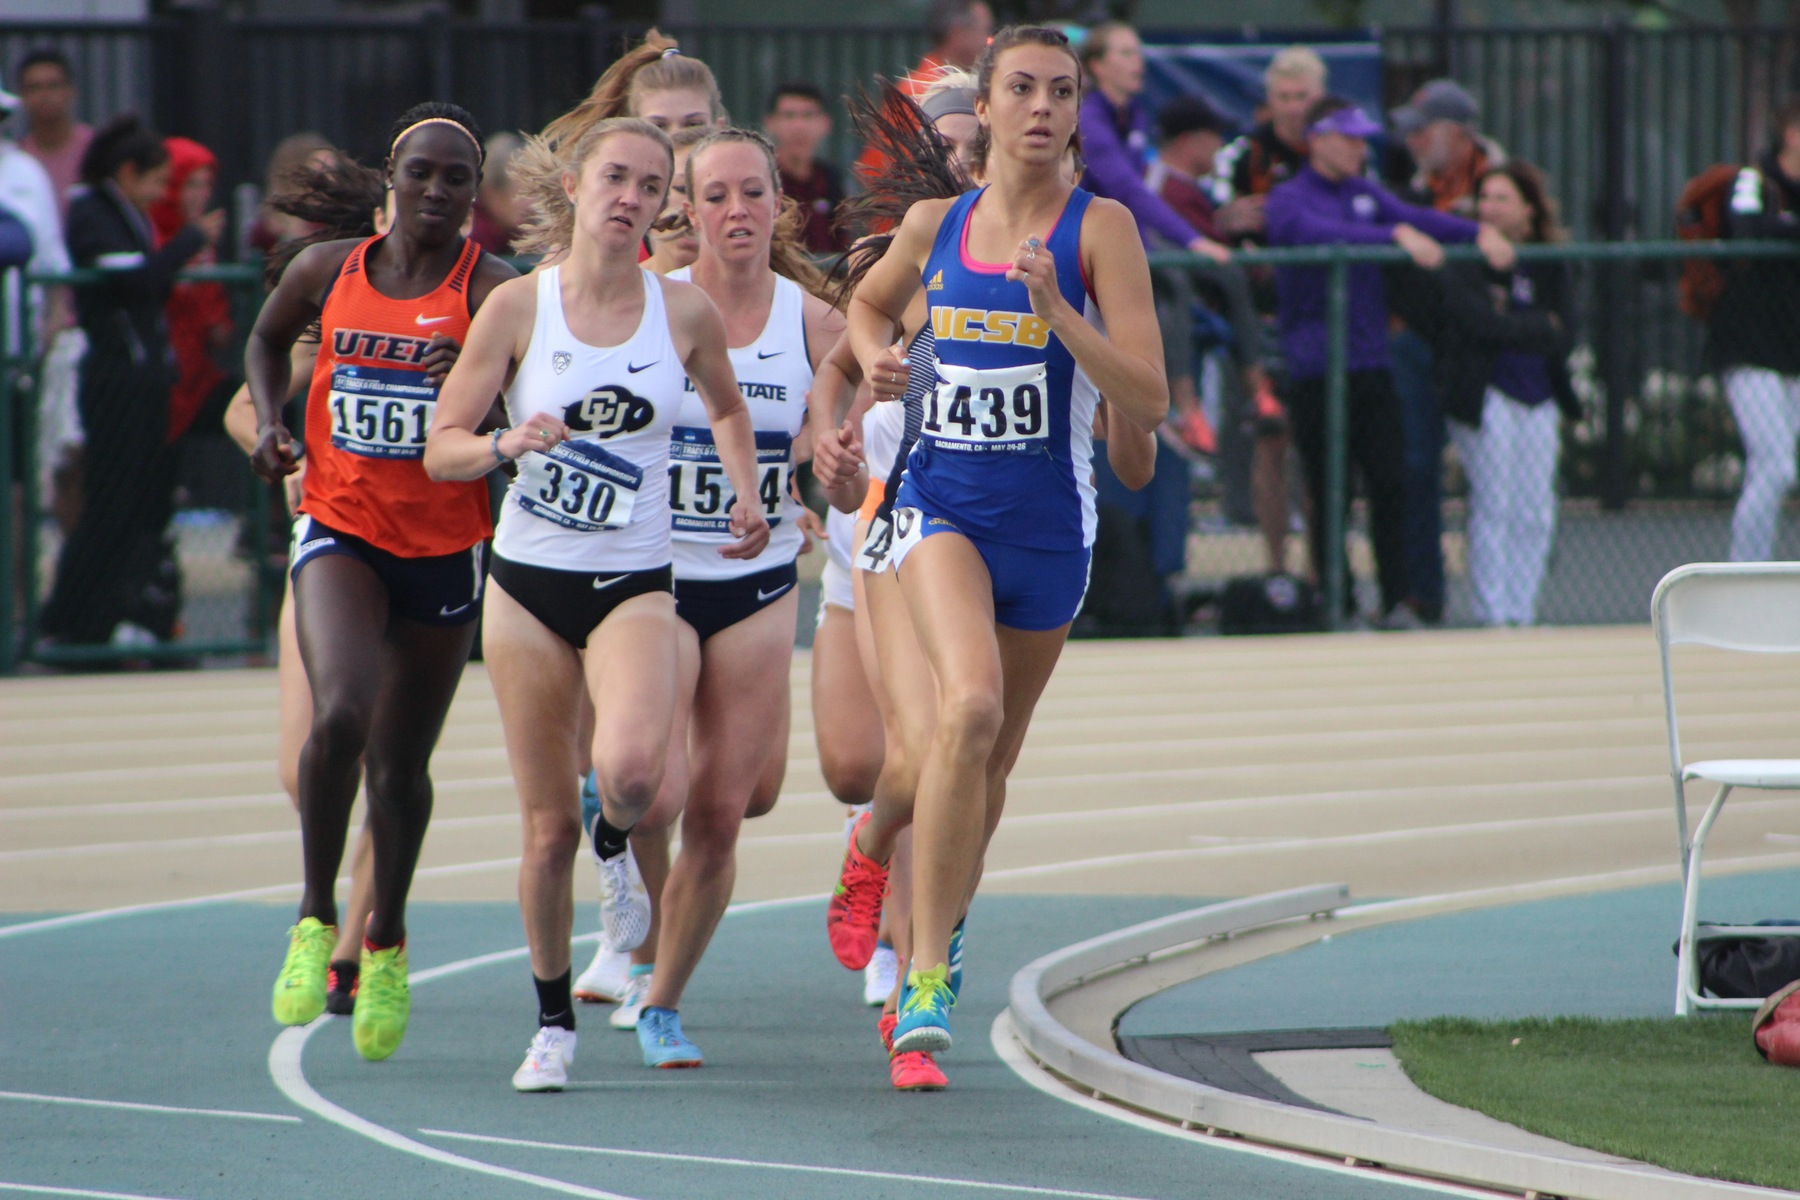 Hinkle, Bender, Tarr Earn USTFCCCA All-Academic Individual Honors